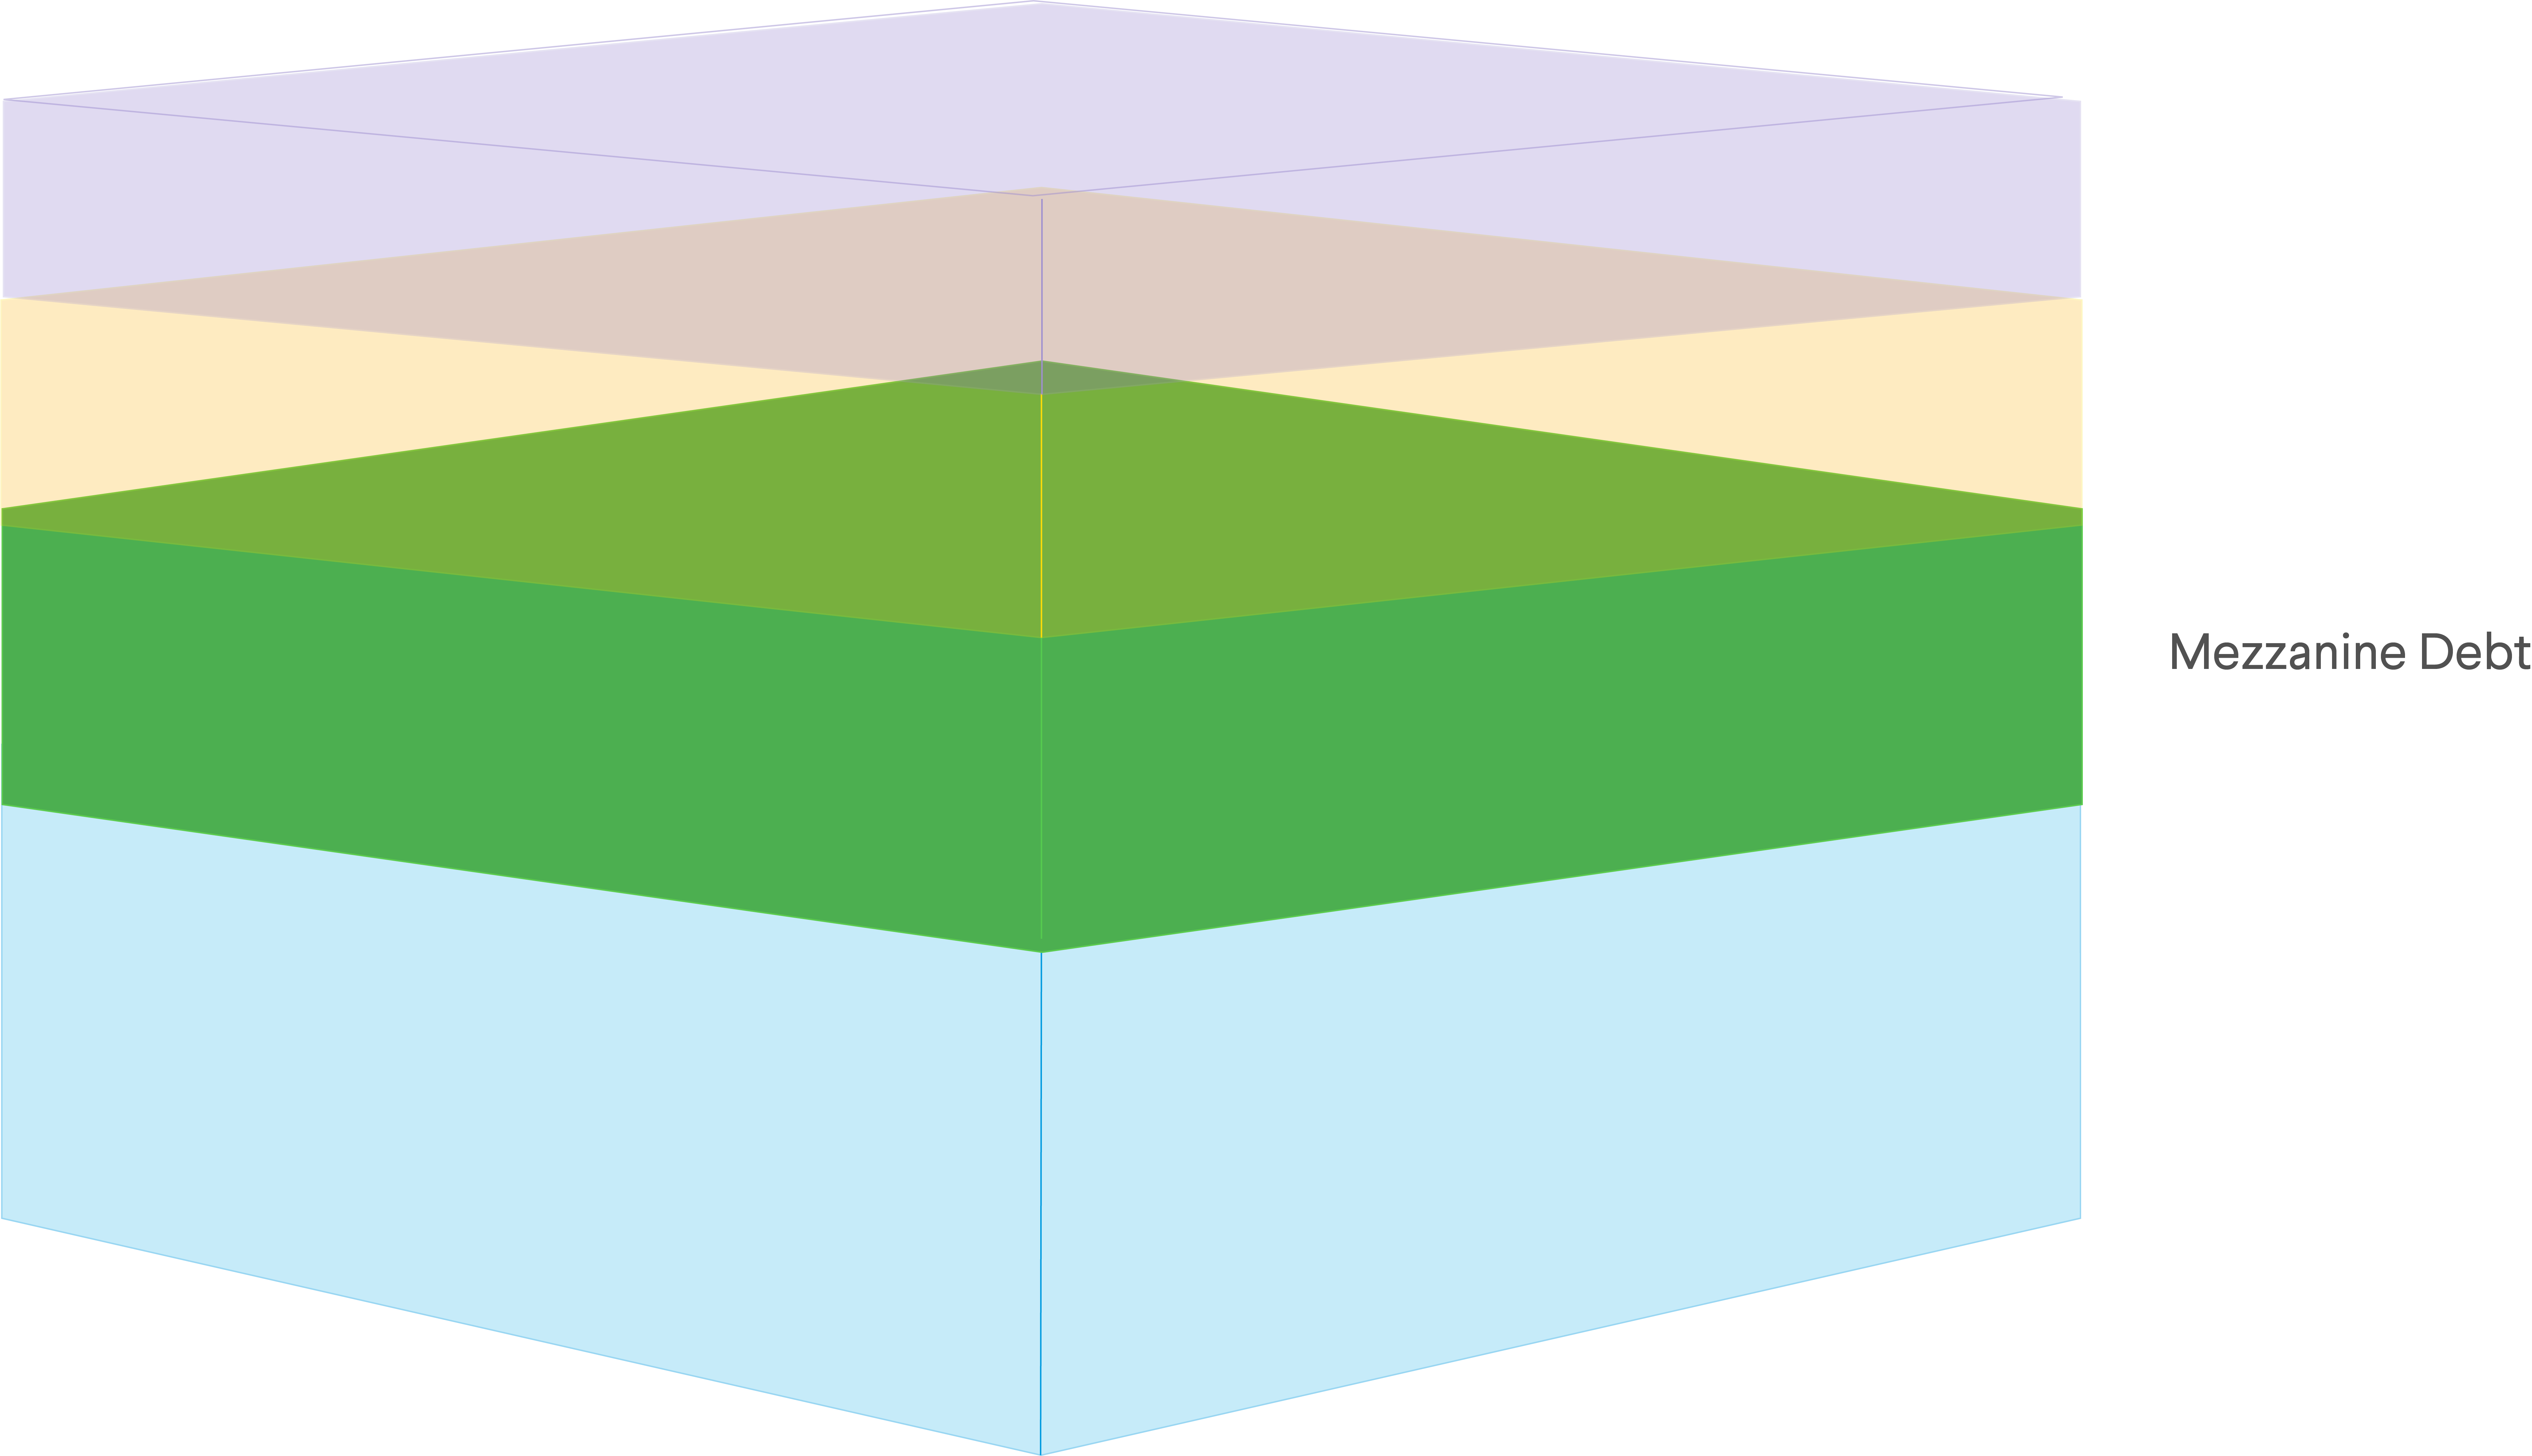 Mezzanine debt as portion of the capital stack